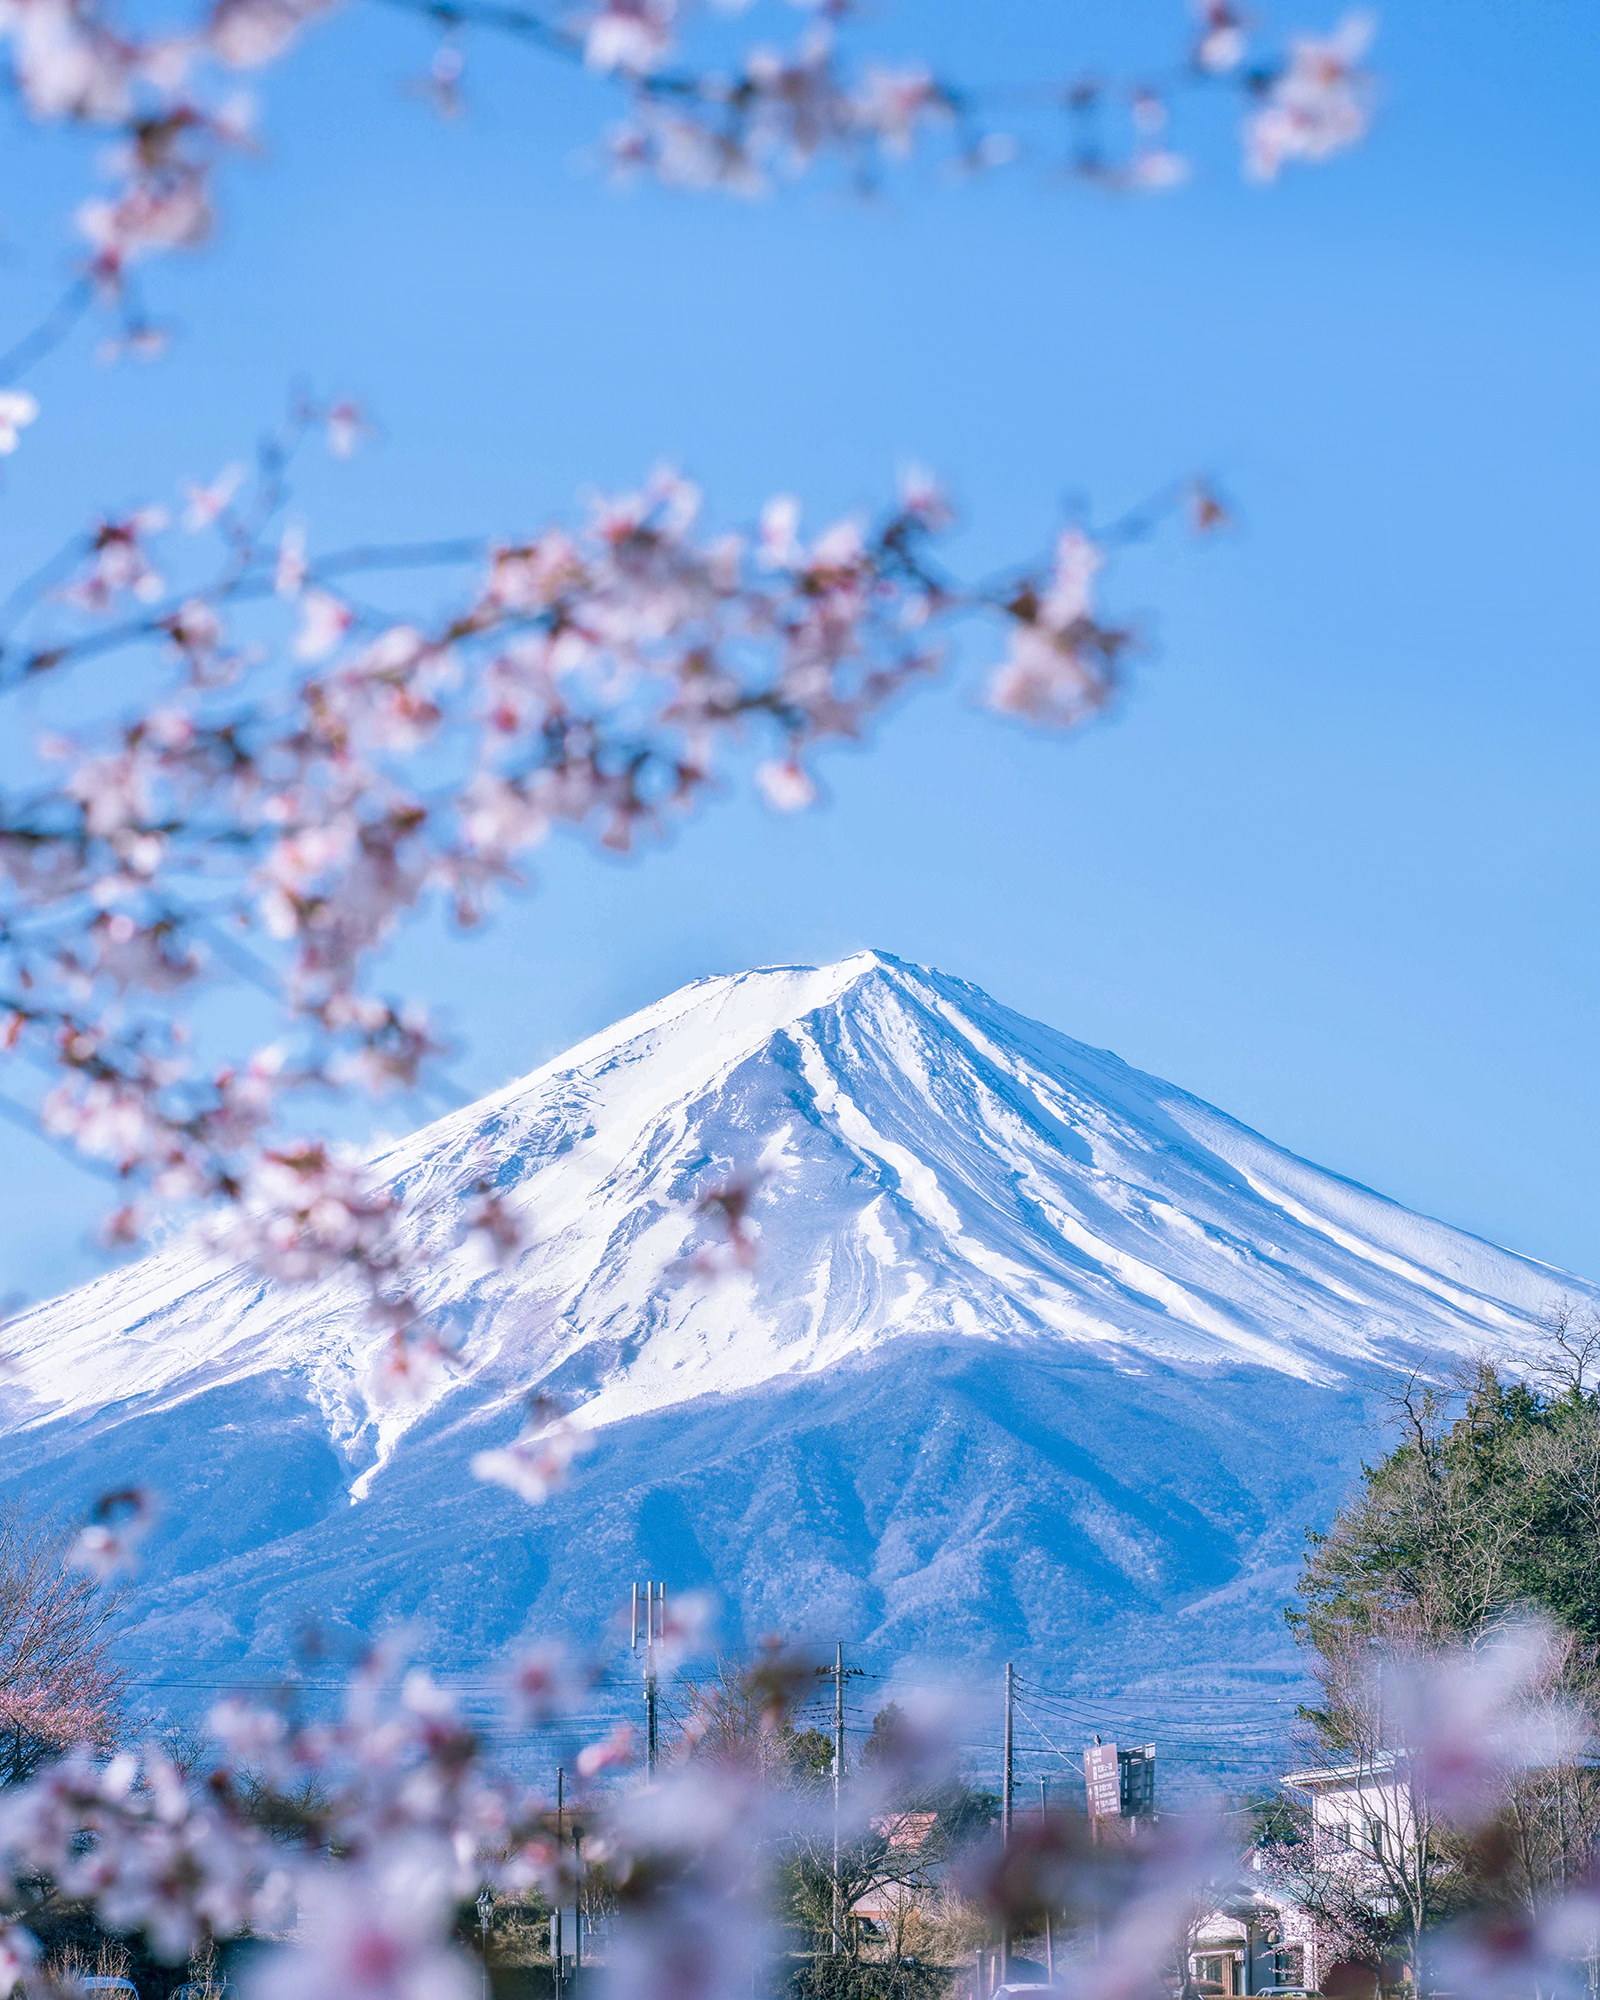 Breathtaking view of Mt. Fuji framed by blooming cherry blossoms.